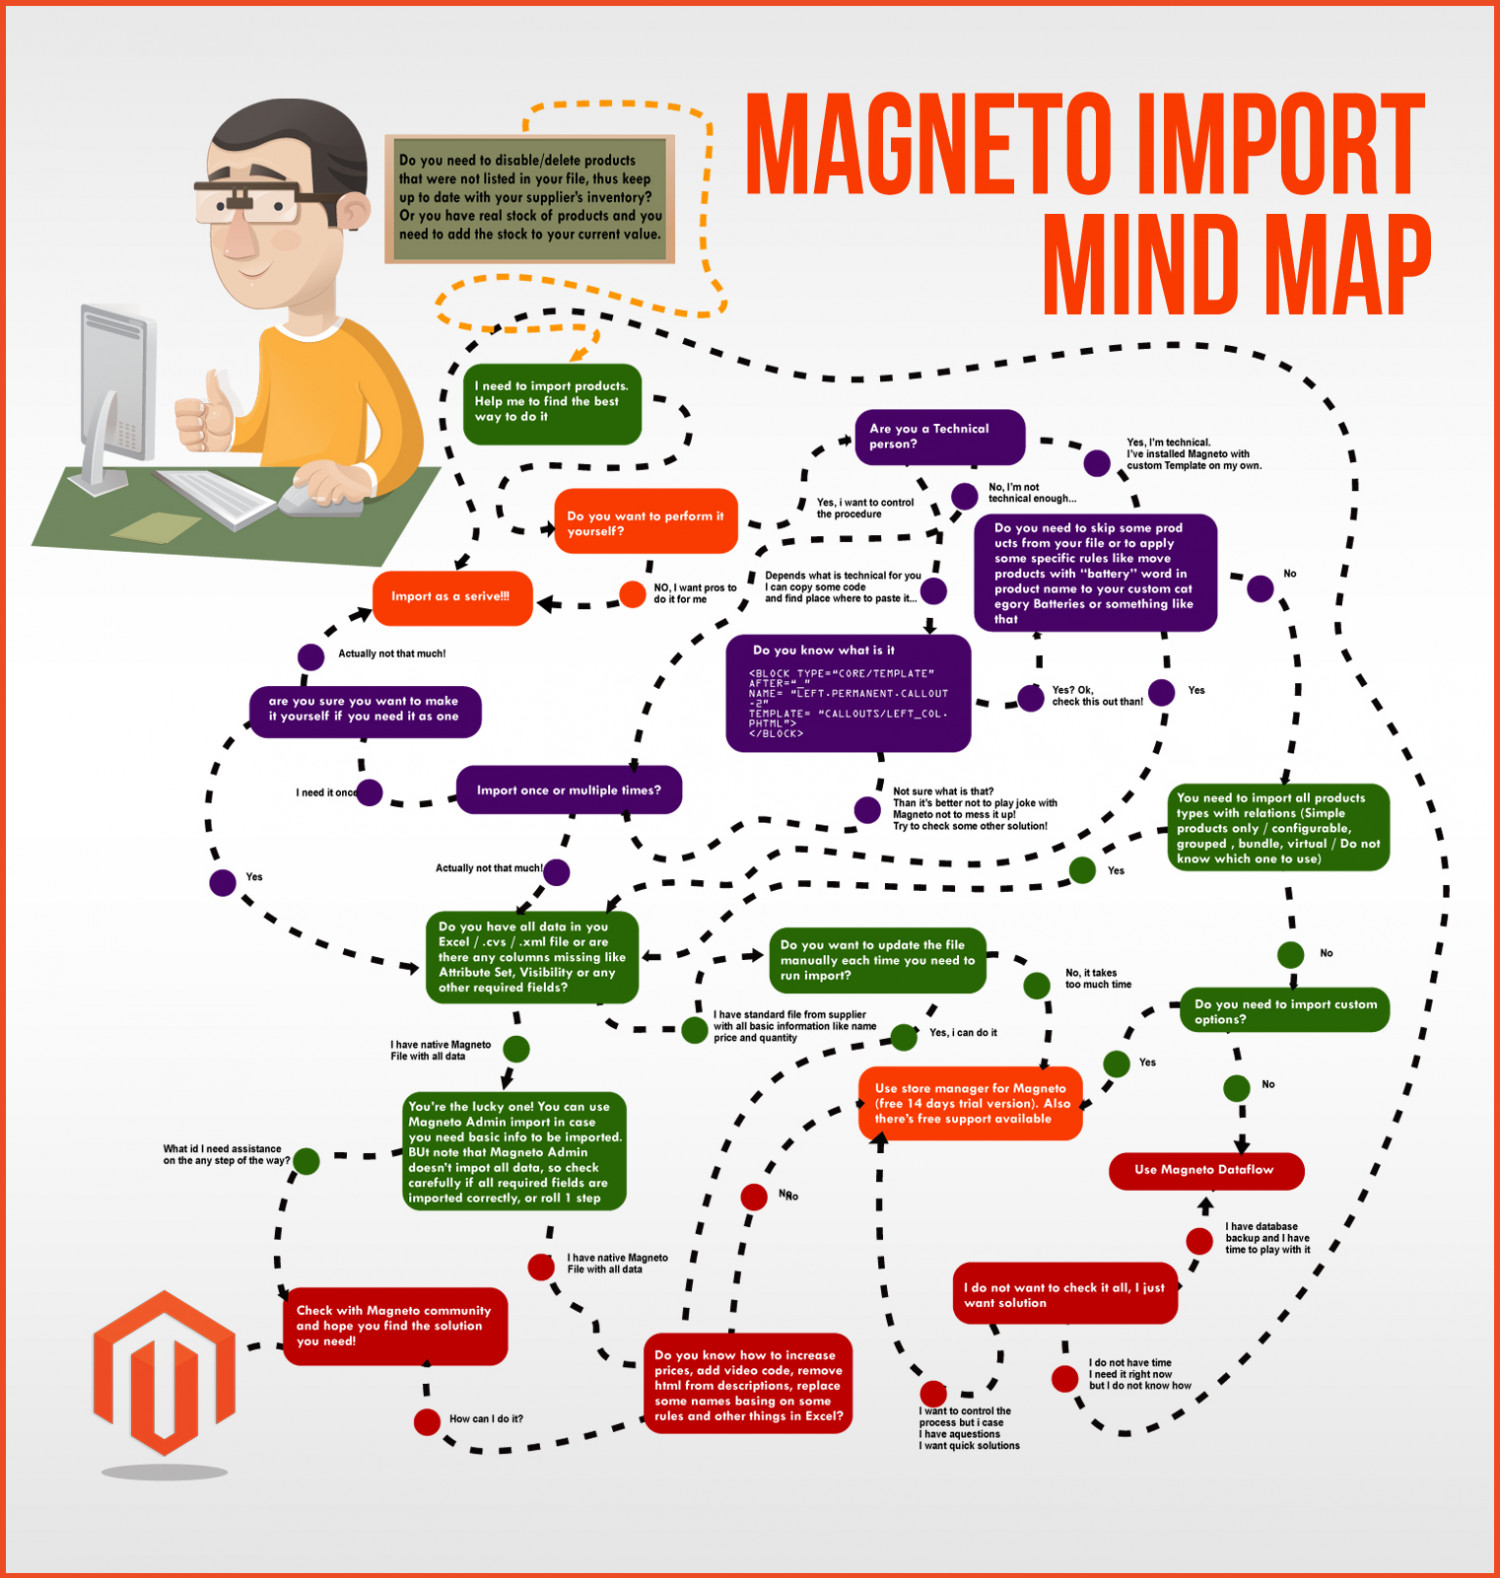 Magneto Import Mind Map Infographic